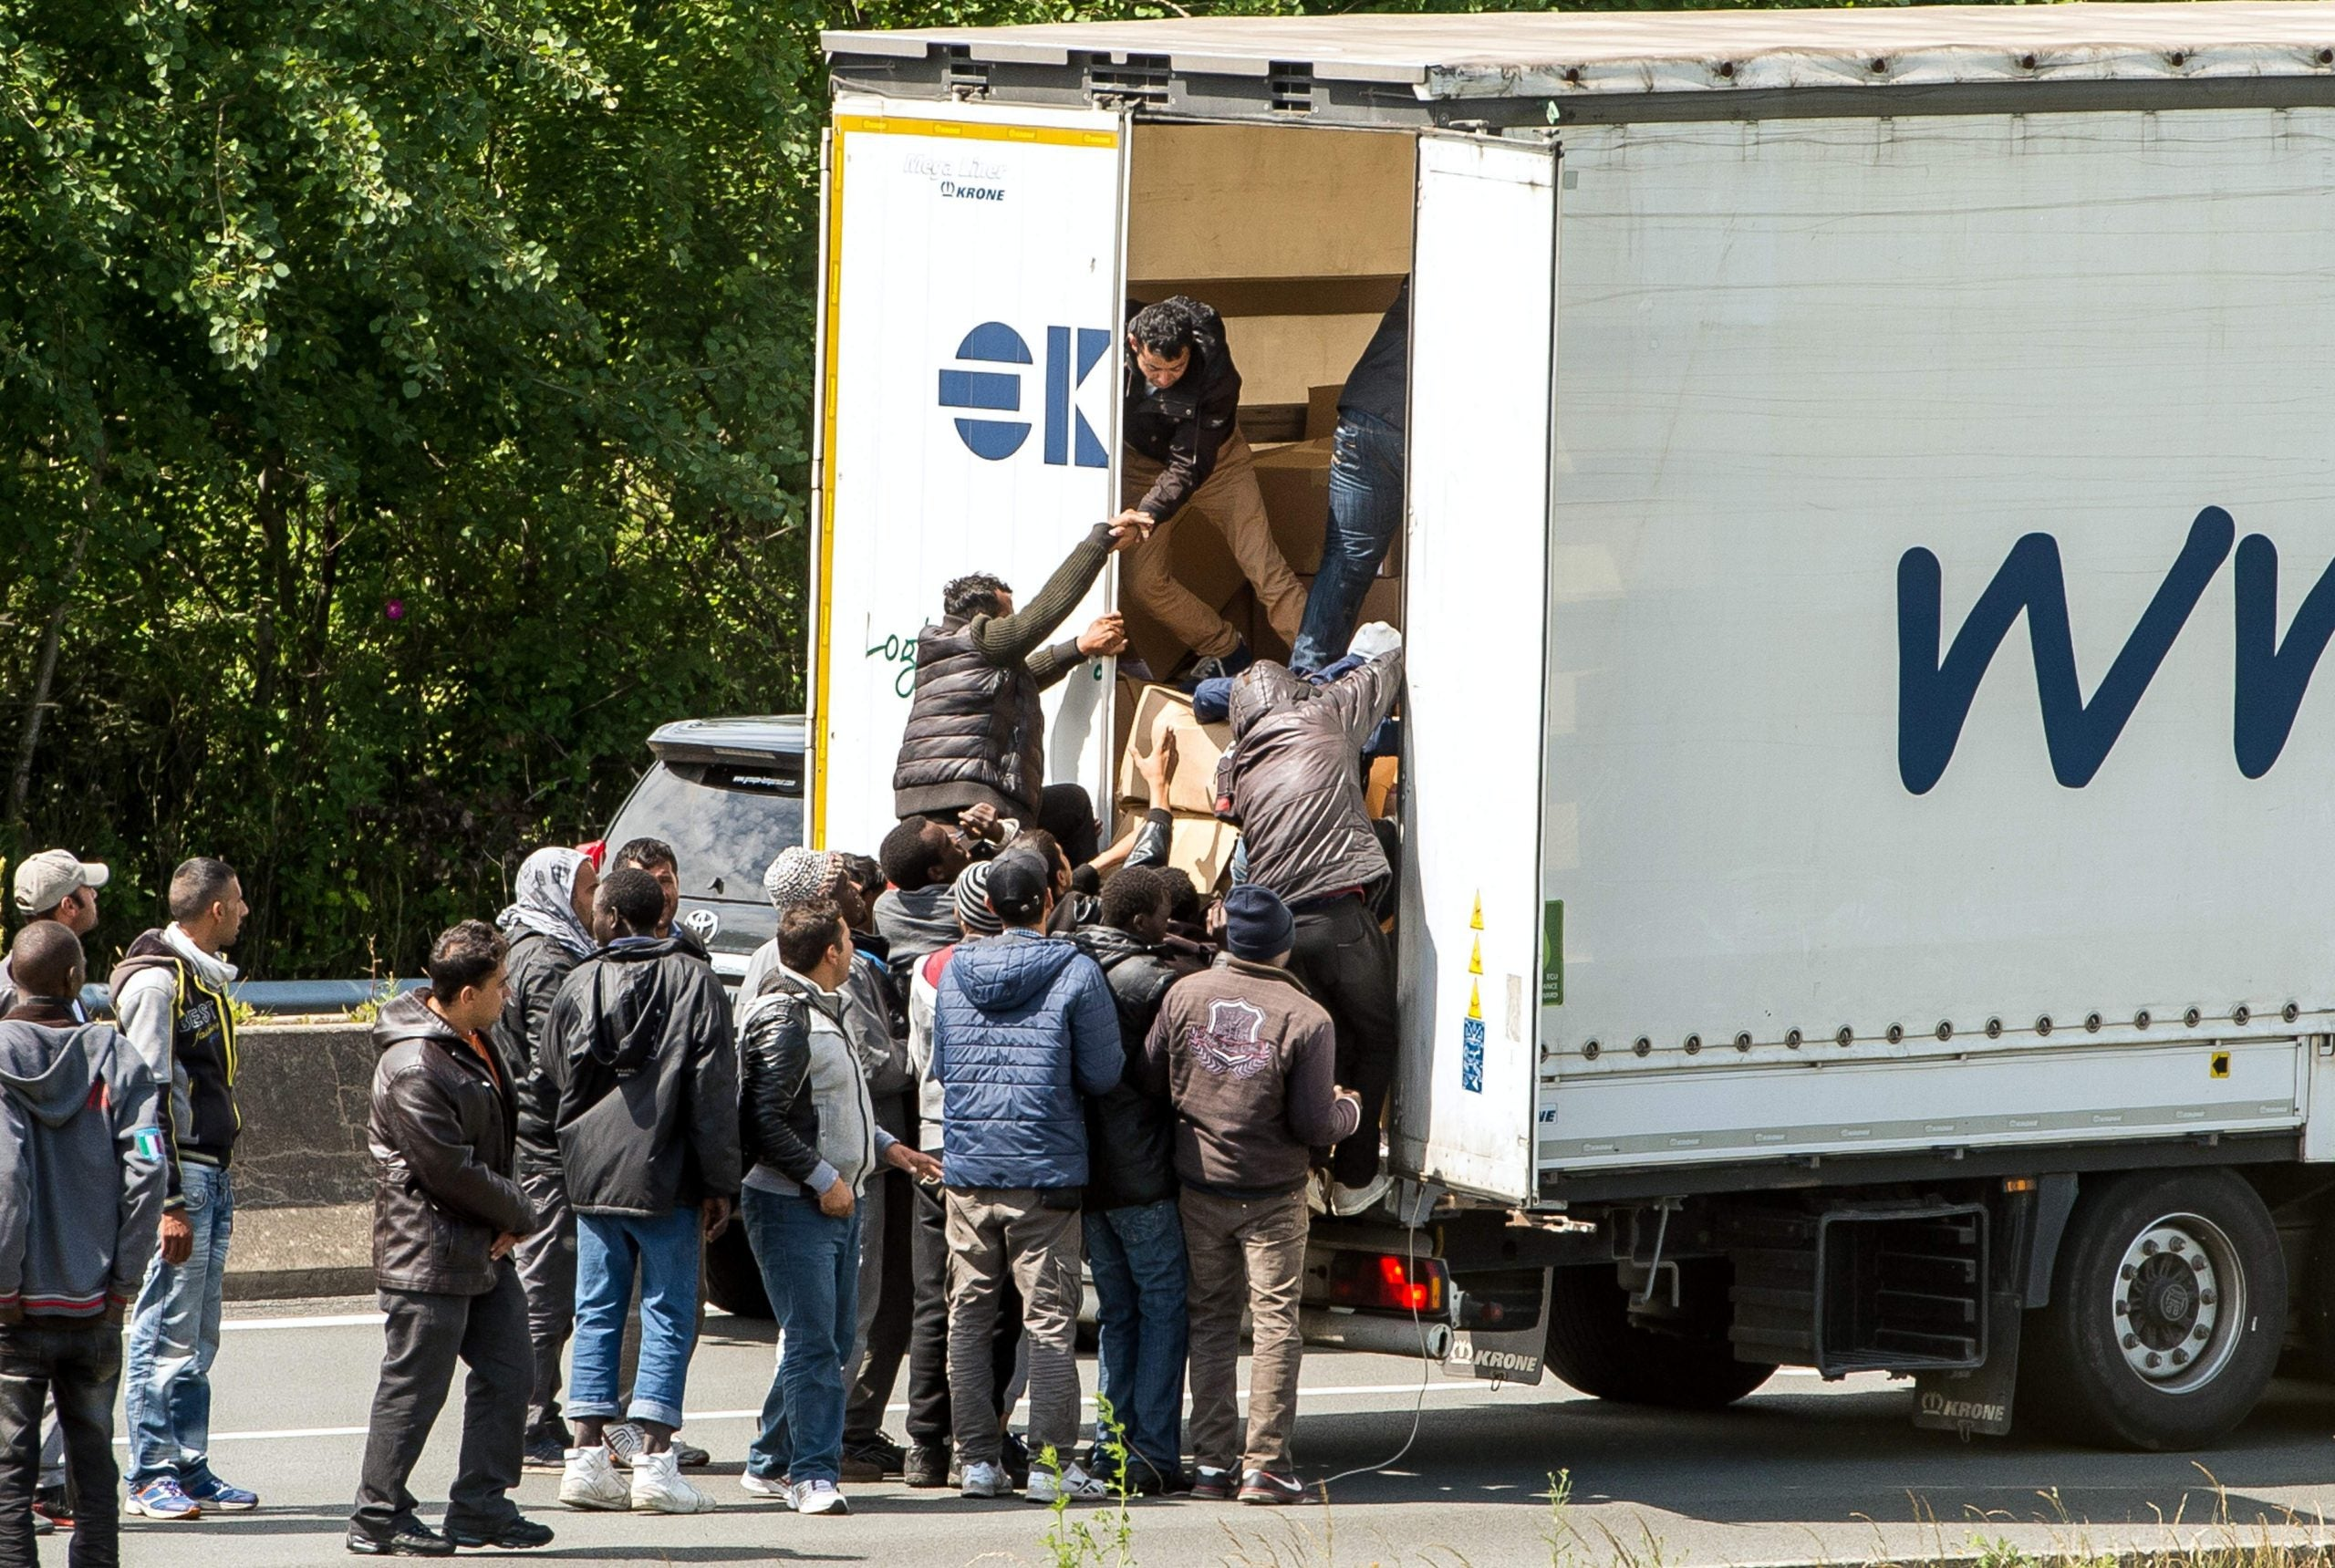 Blockades, attacks, and tear gas: what's going on in Calais?